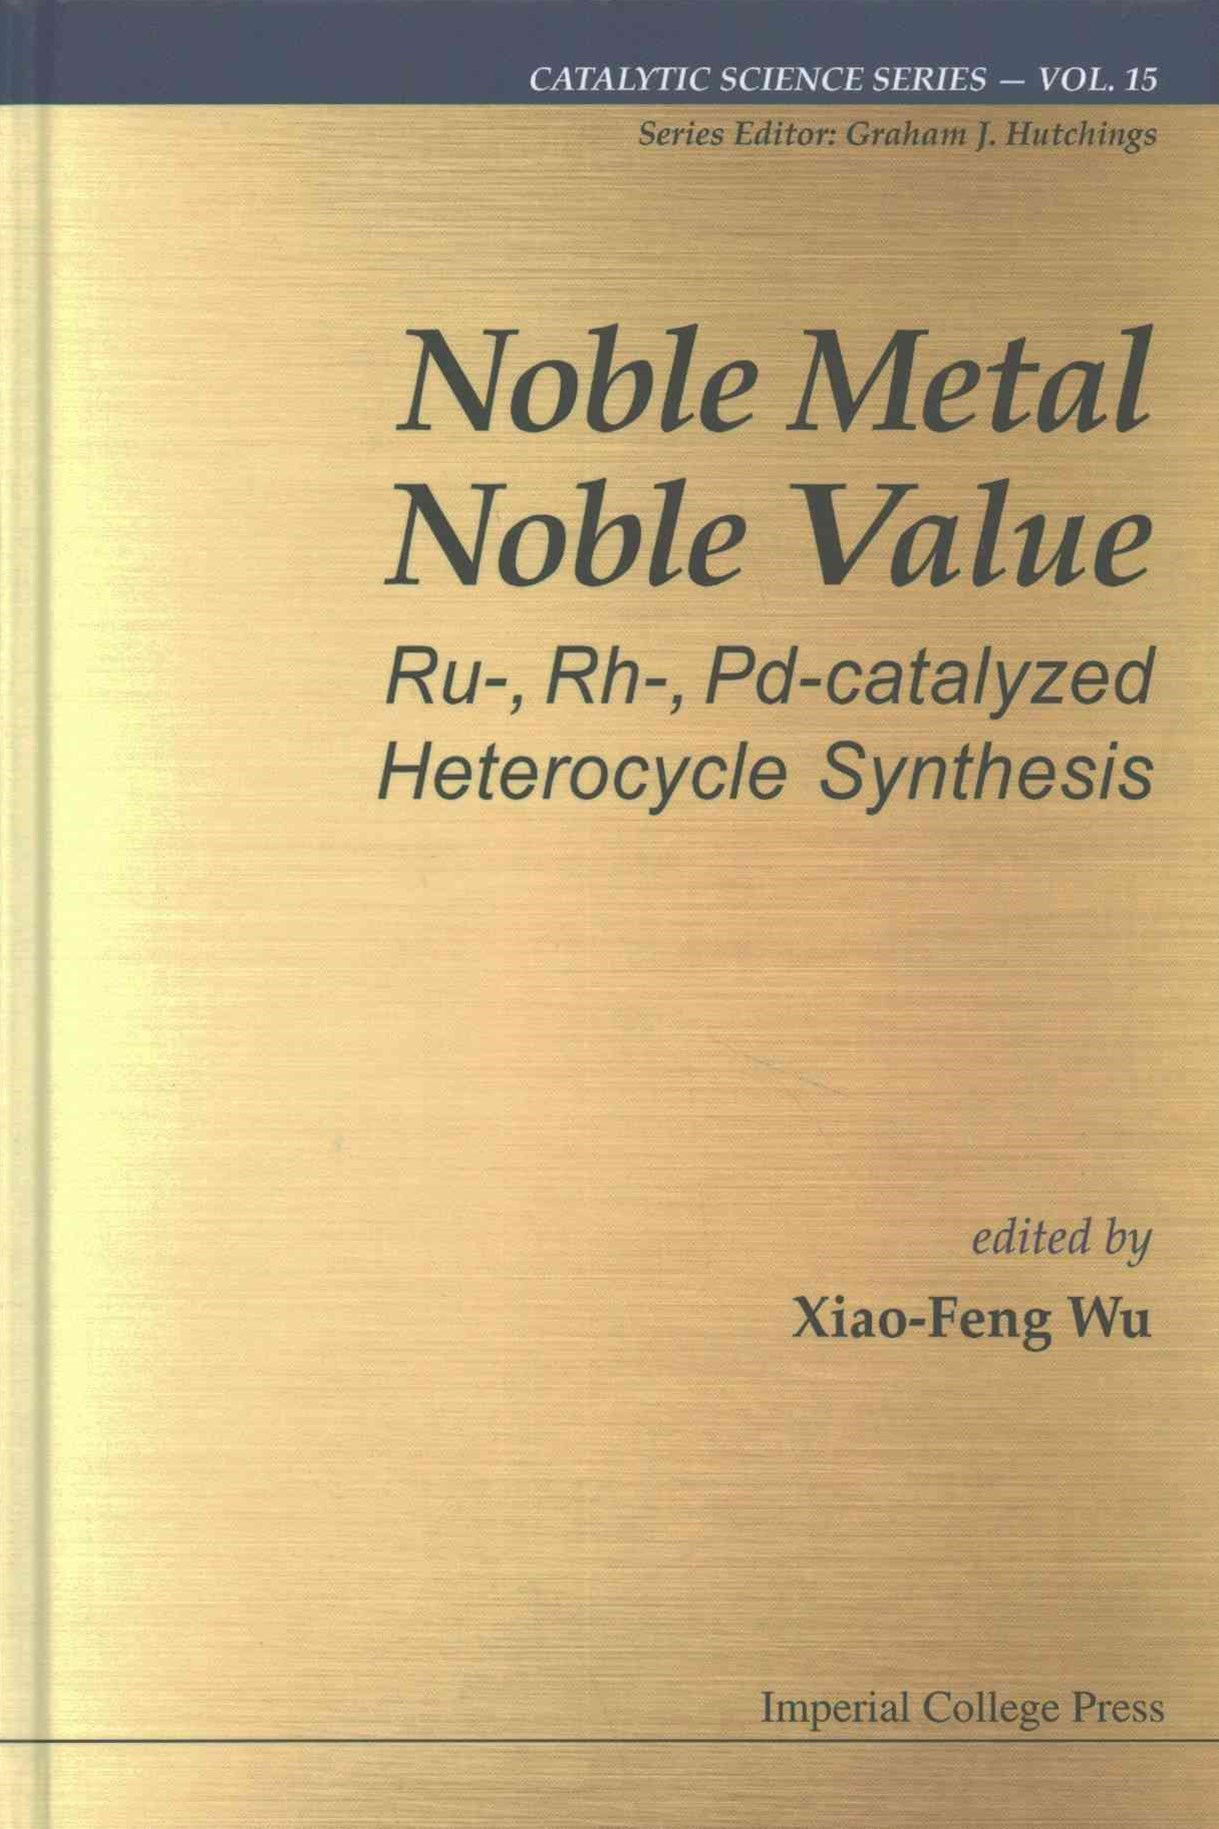 Noble Metal Noble Value: Ru-, Rh-, Pd-Catalyzed Heterocycle Synthesis